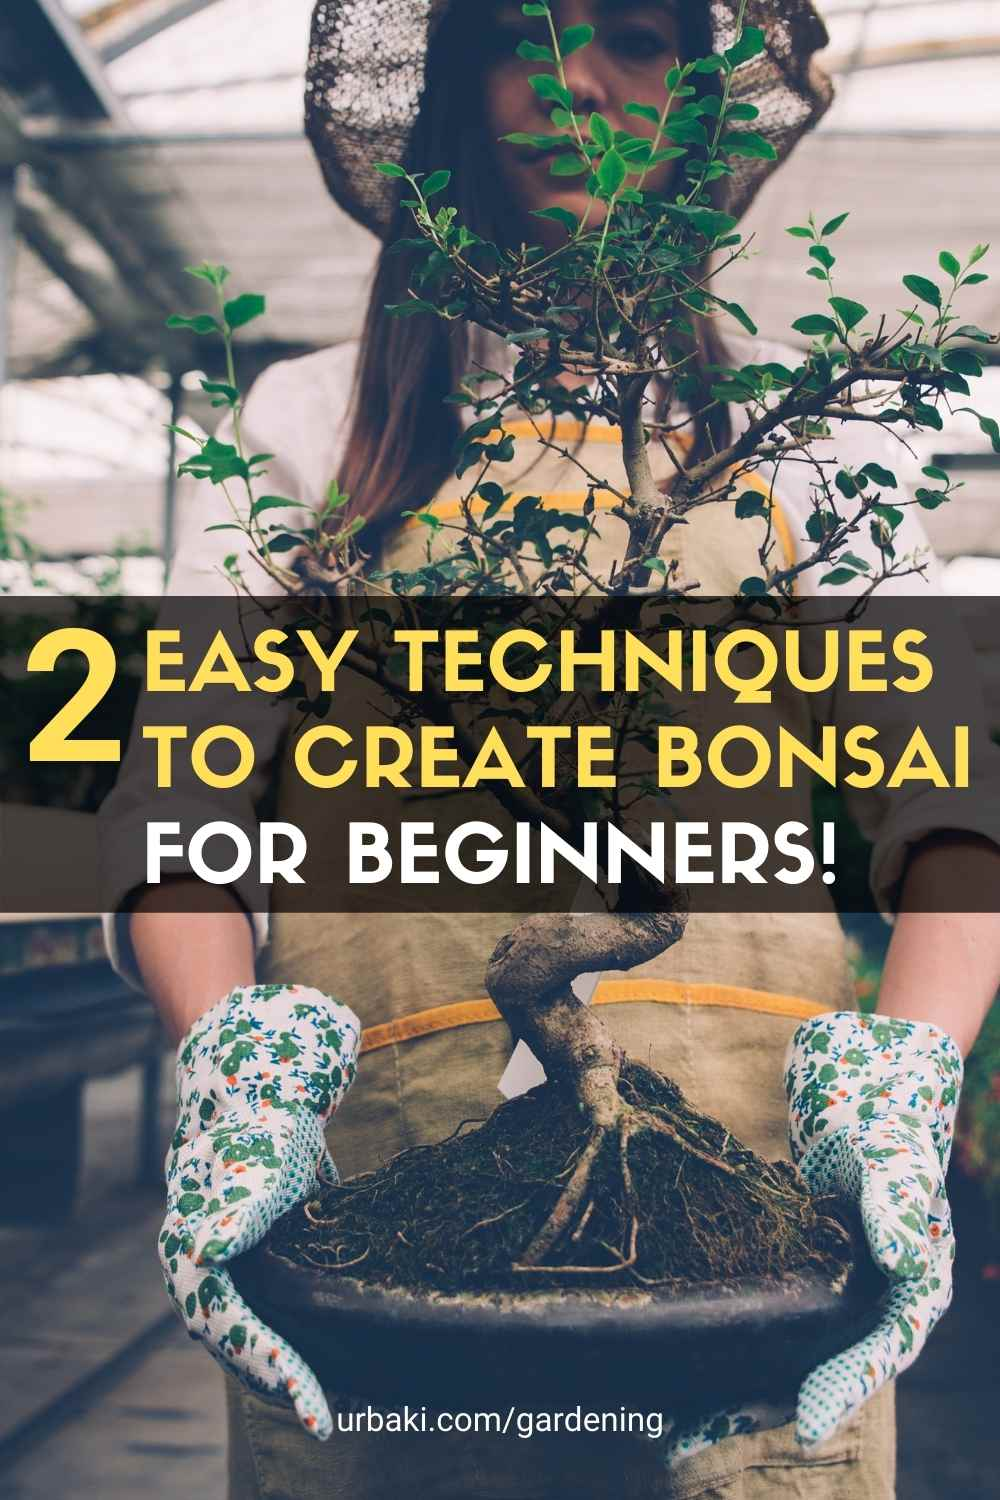 EASY Techniques to Create Bonsai